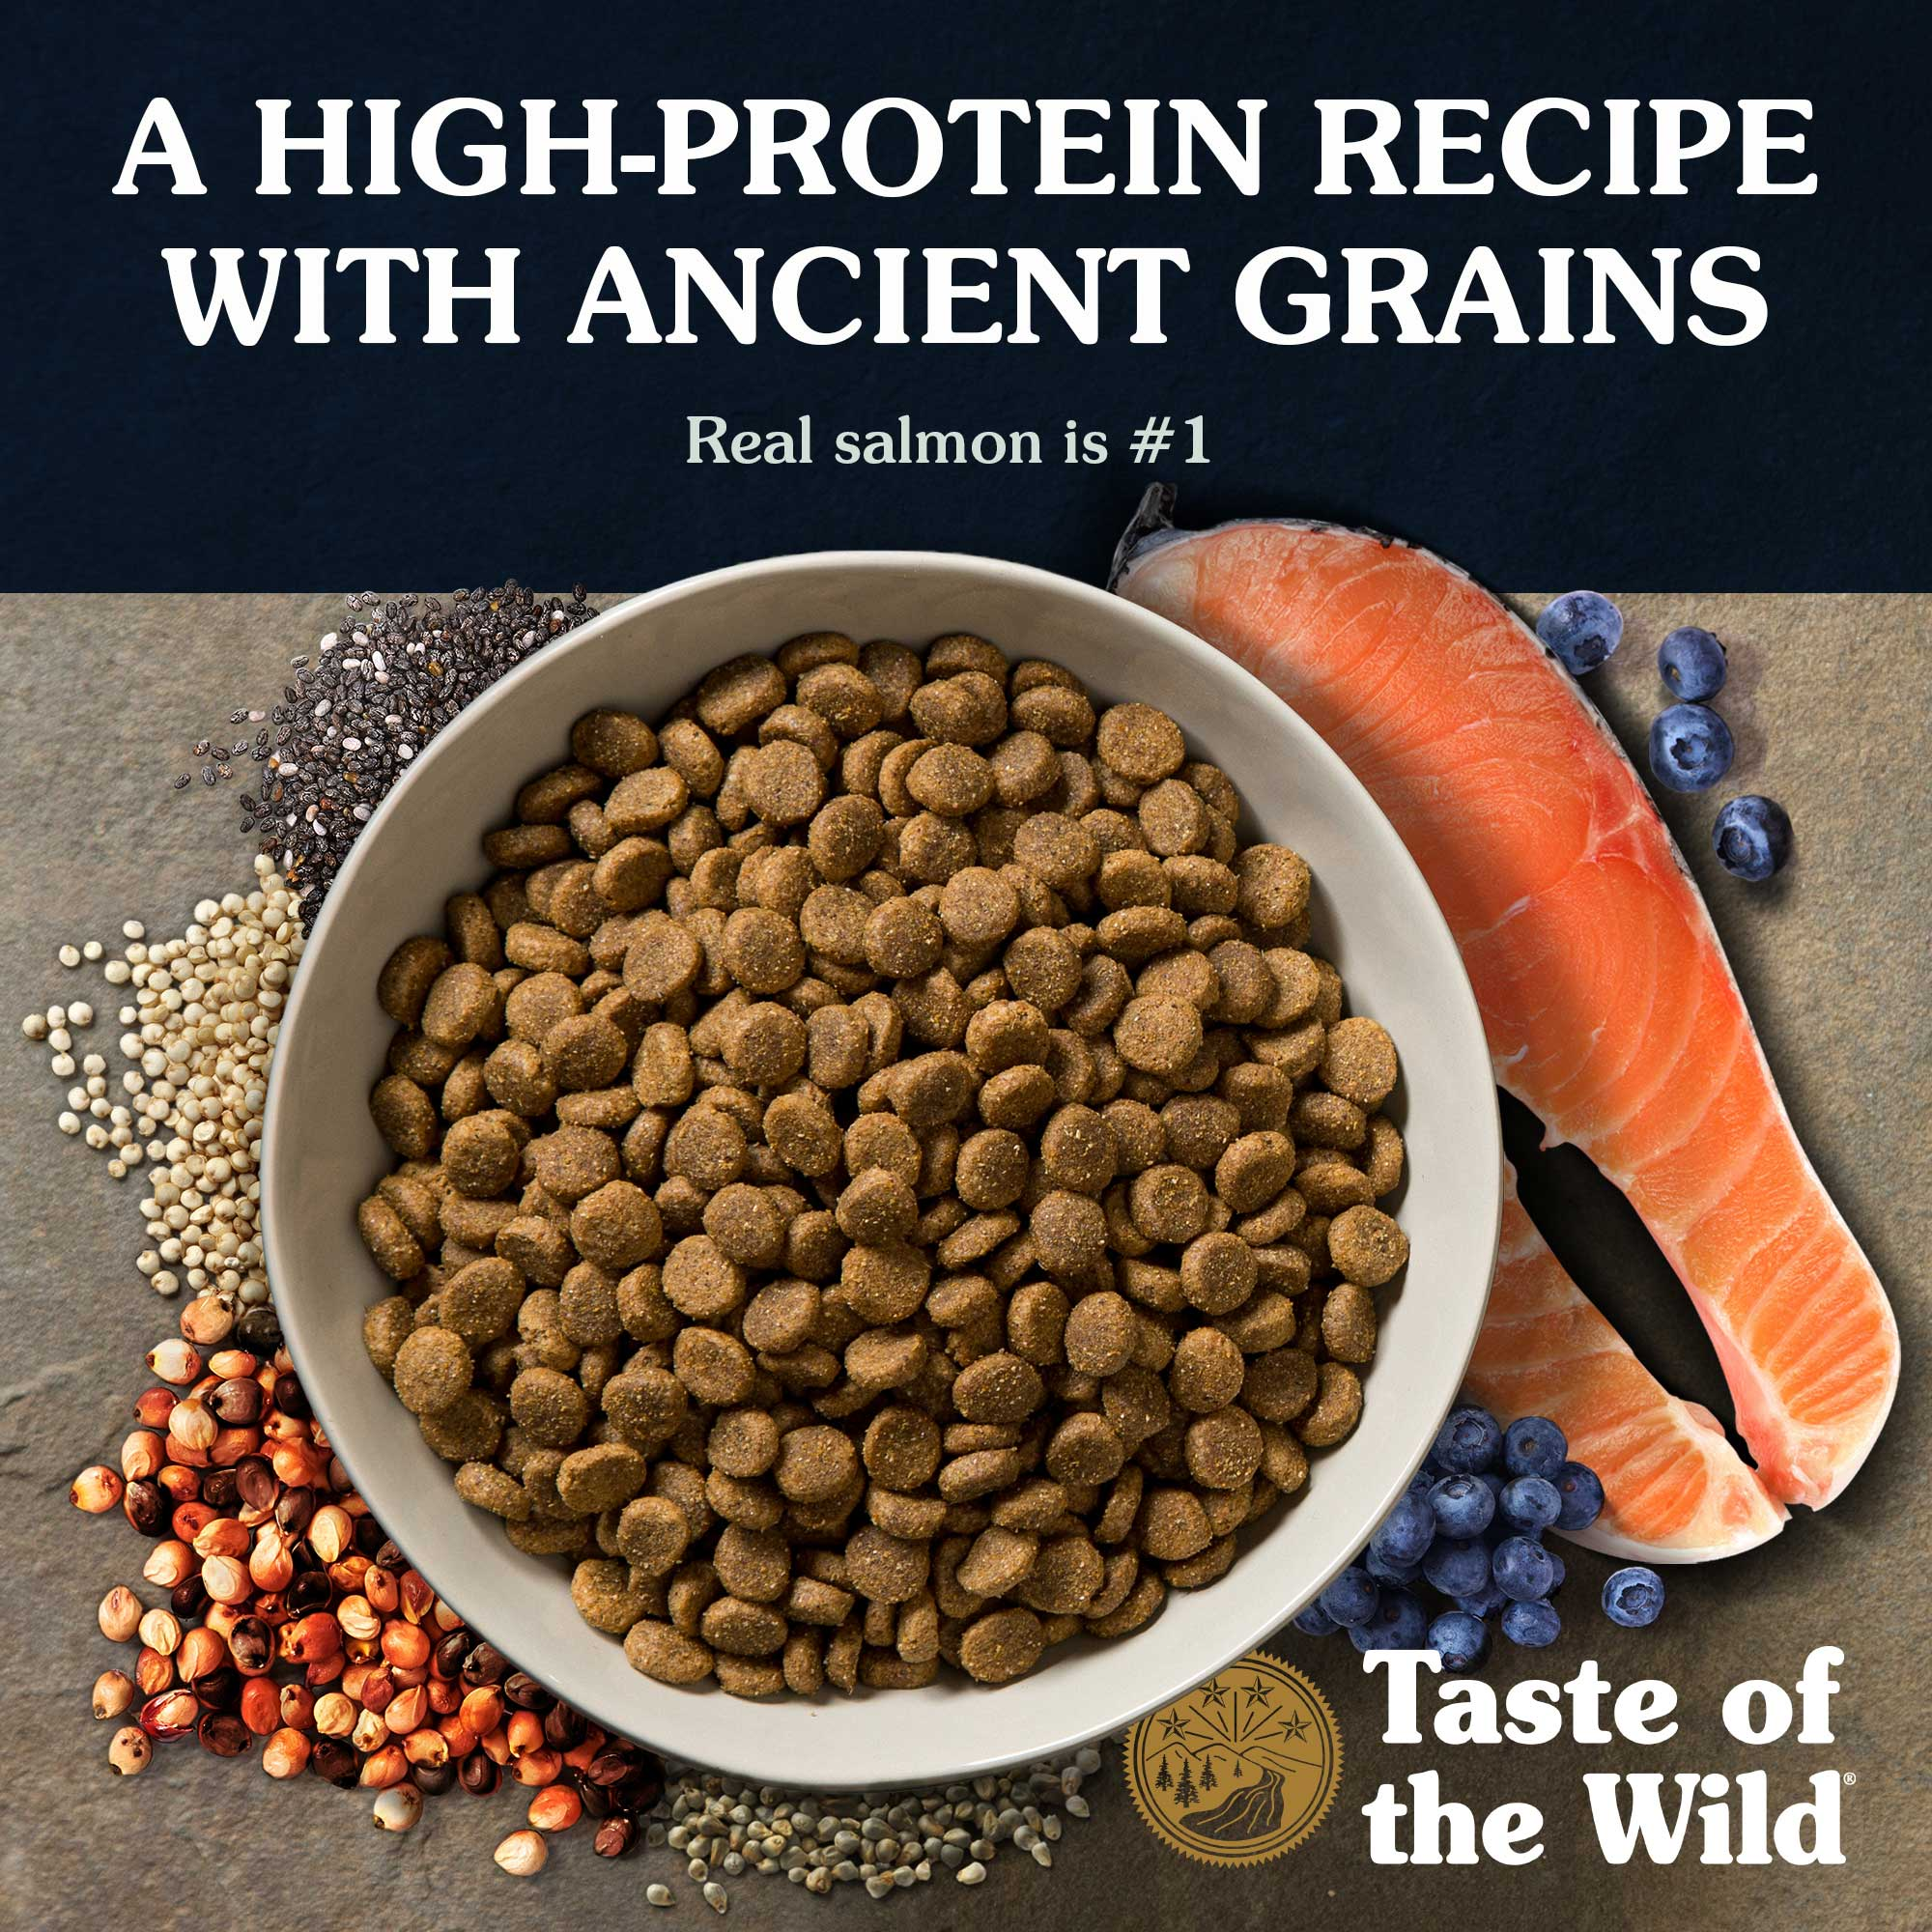 A high-protein recipe with ancient grains. Real salmon is #1.